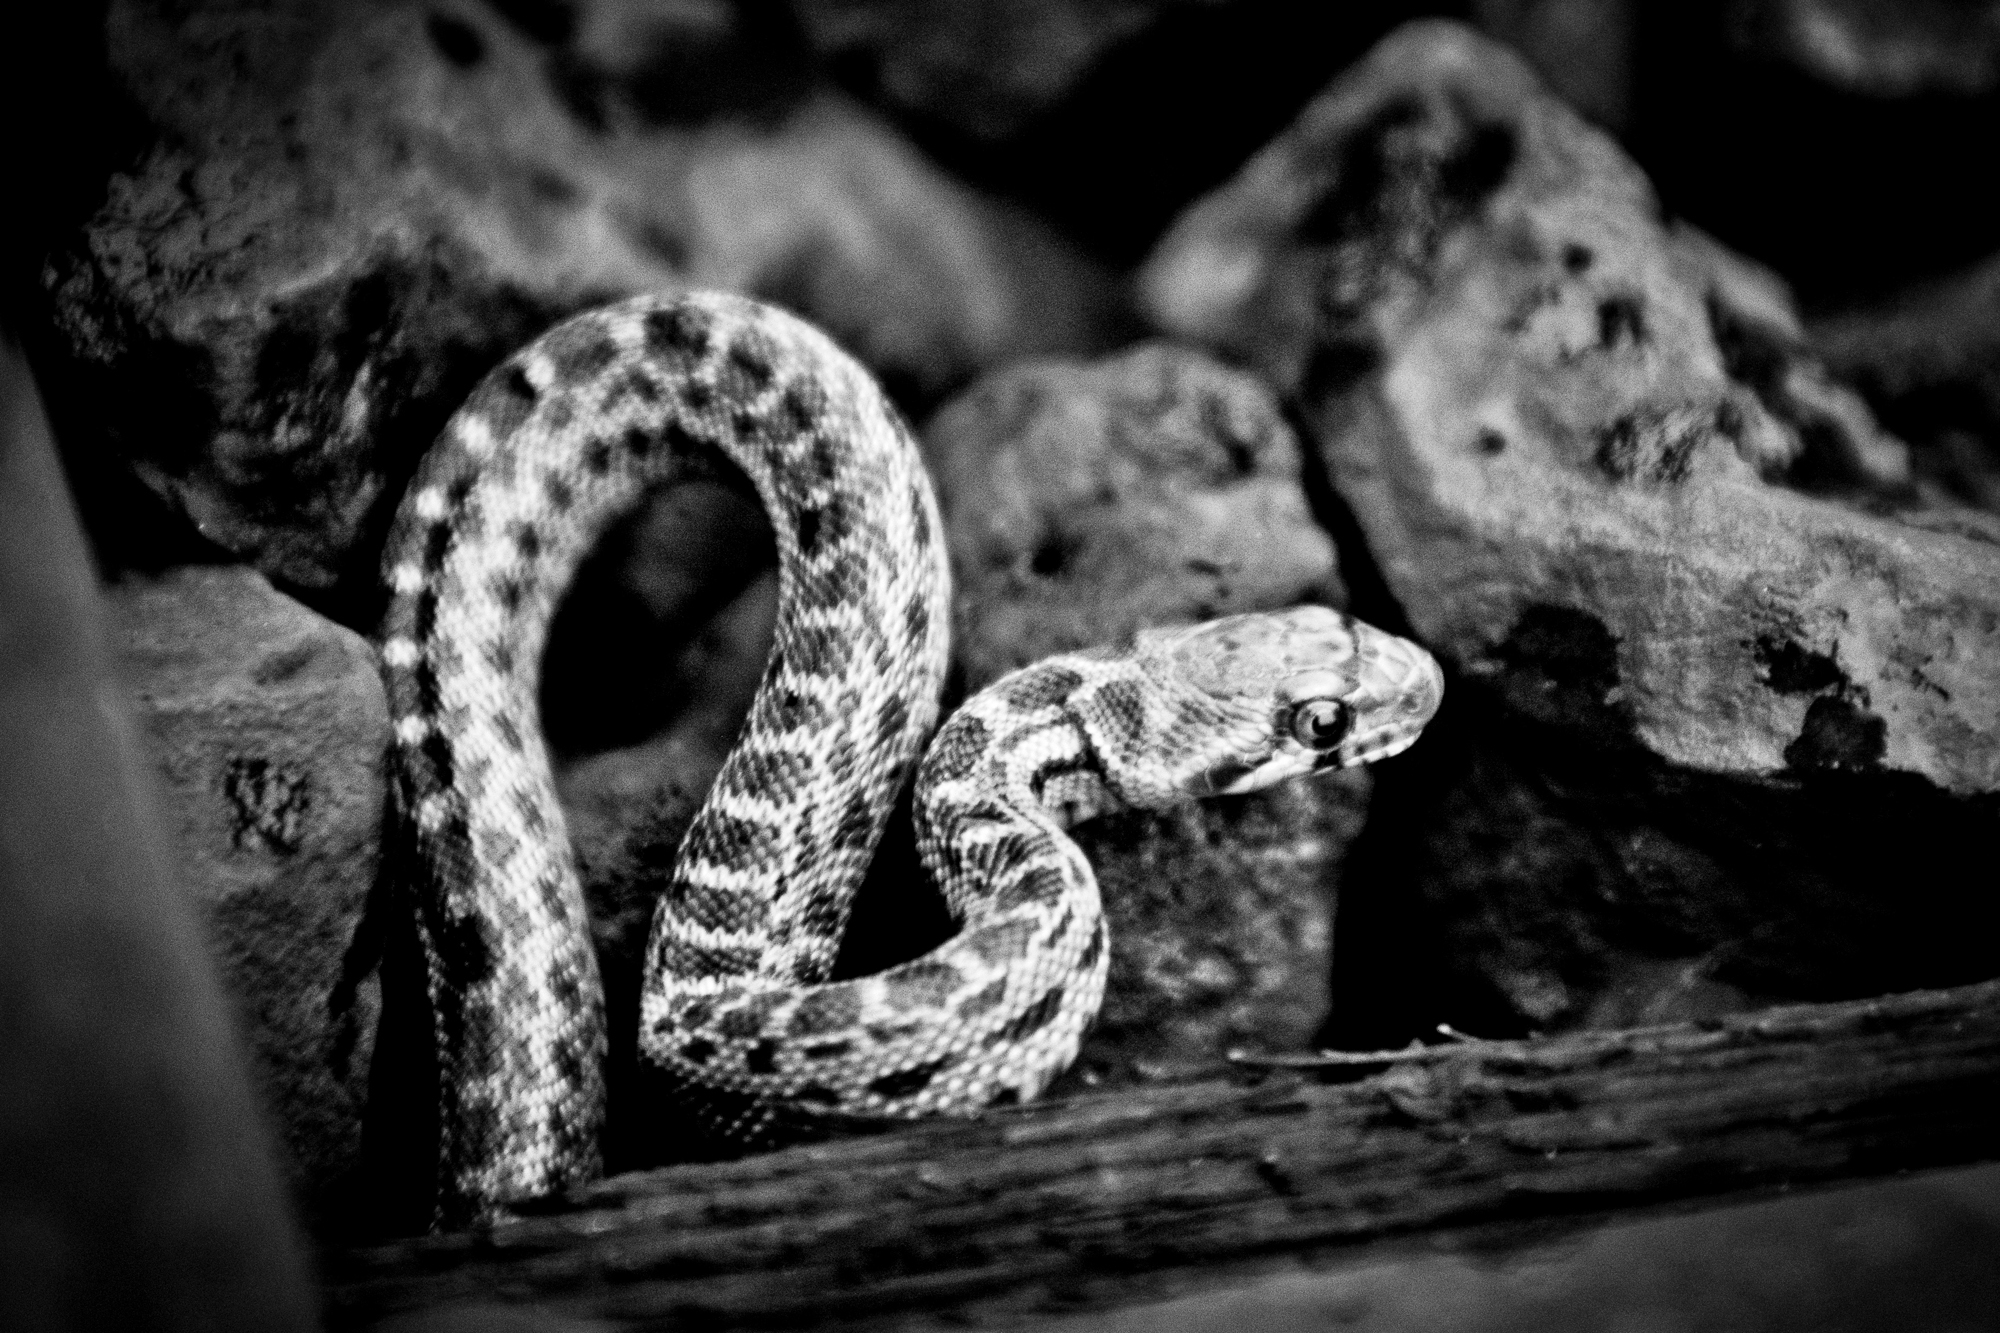 An unexpected late Fall juvenile rattlesnake takes cover along the warmth of the steel train tracks.  We figured it was way way too late and too cold for this to be a factor.  They are pretty adorable at this size, you almost want to cuddle with it.